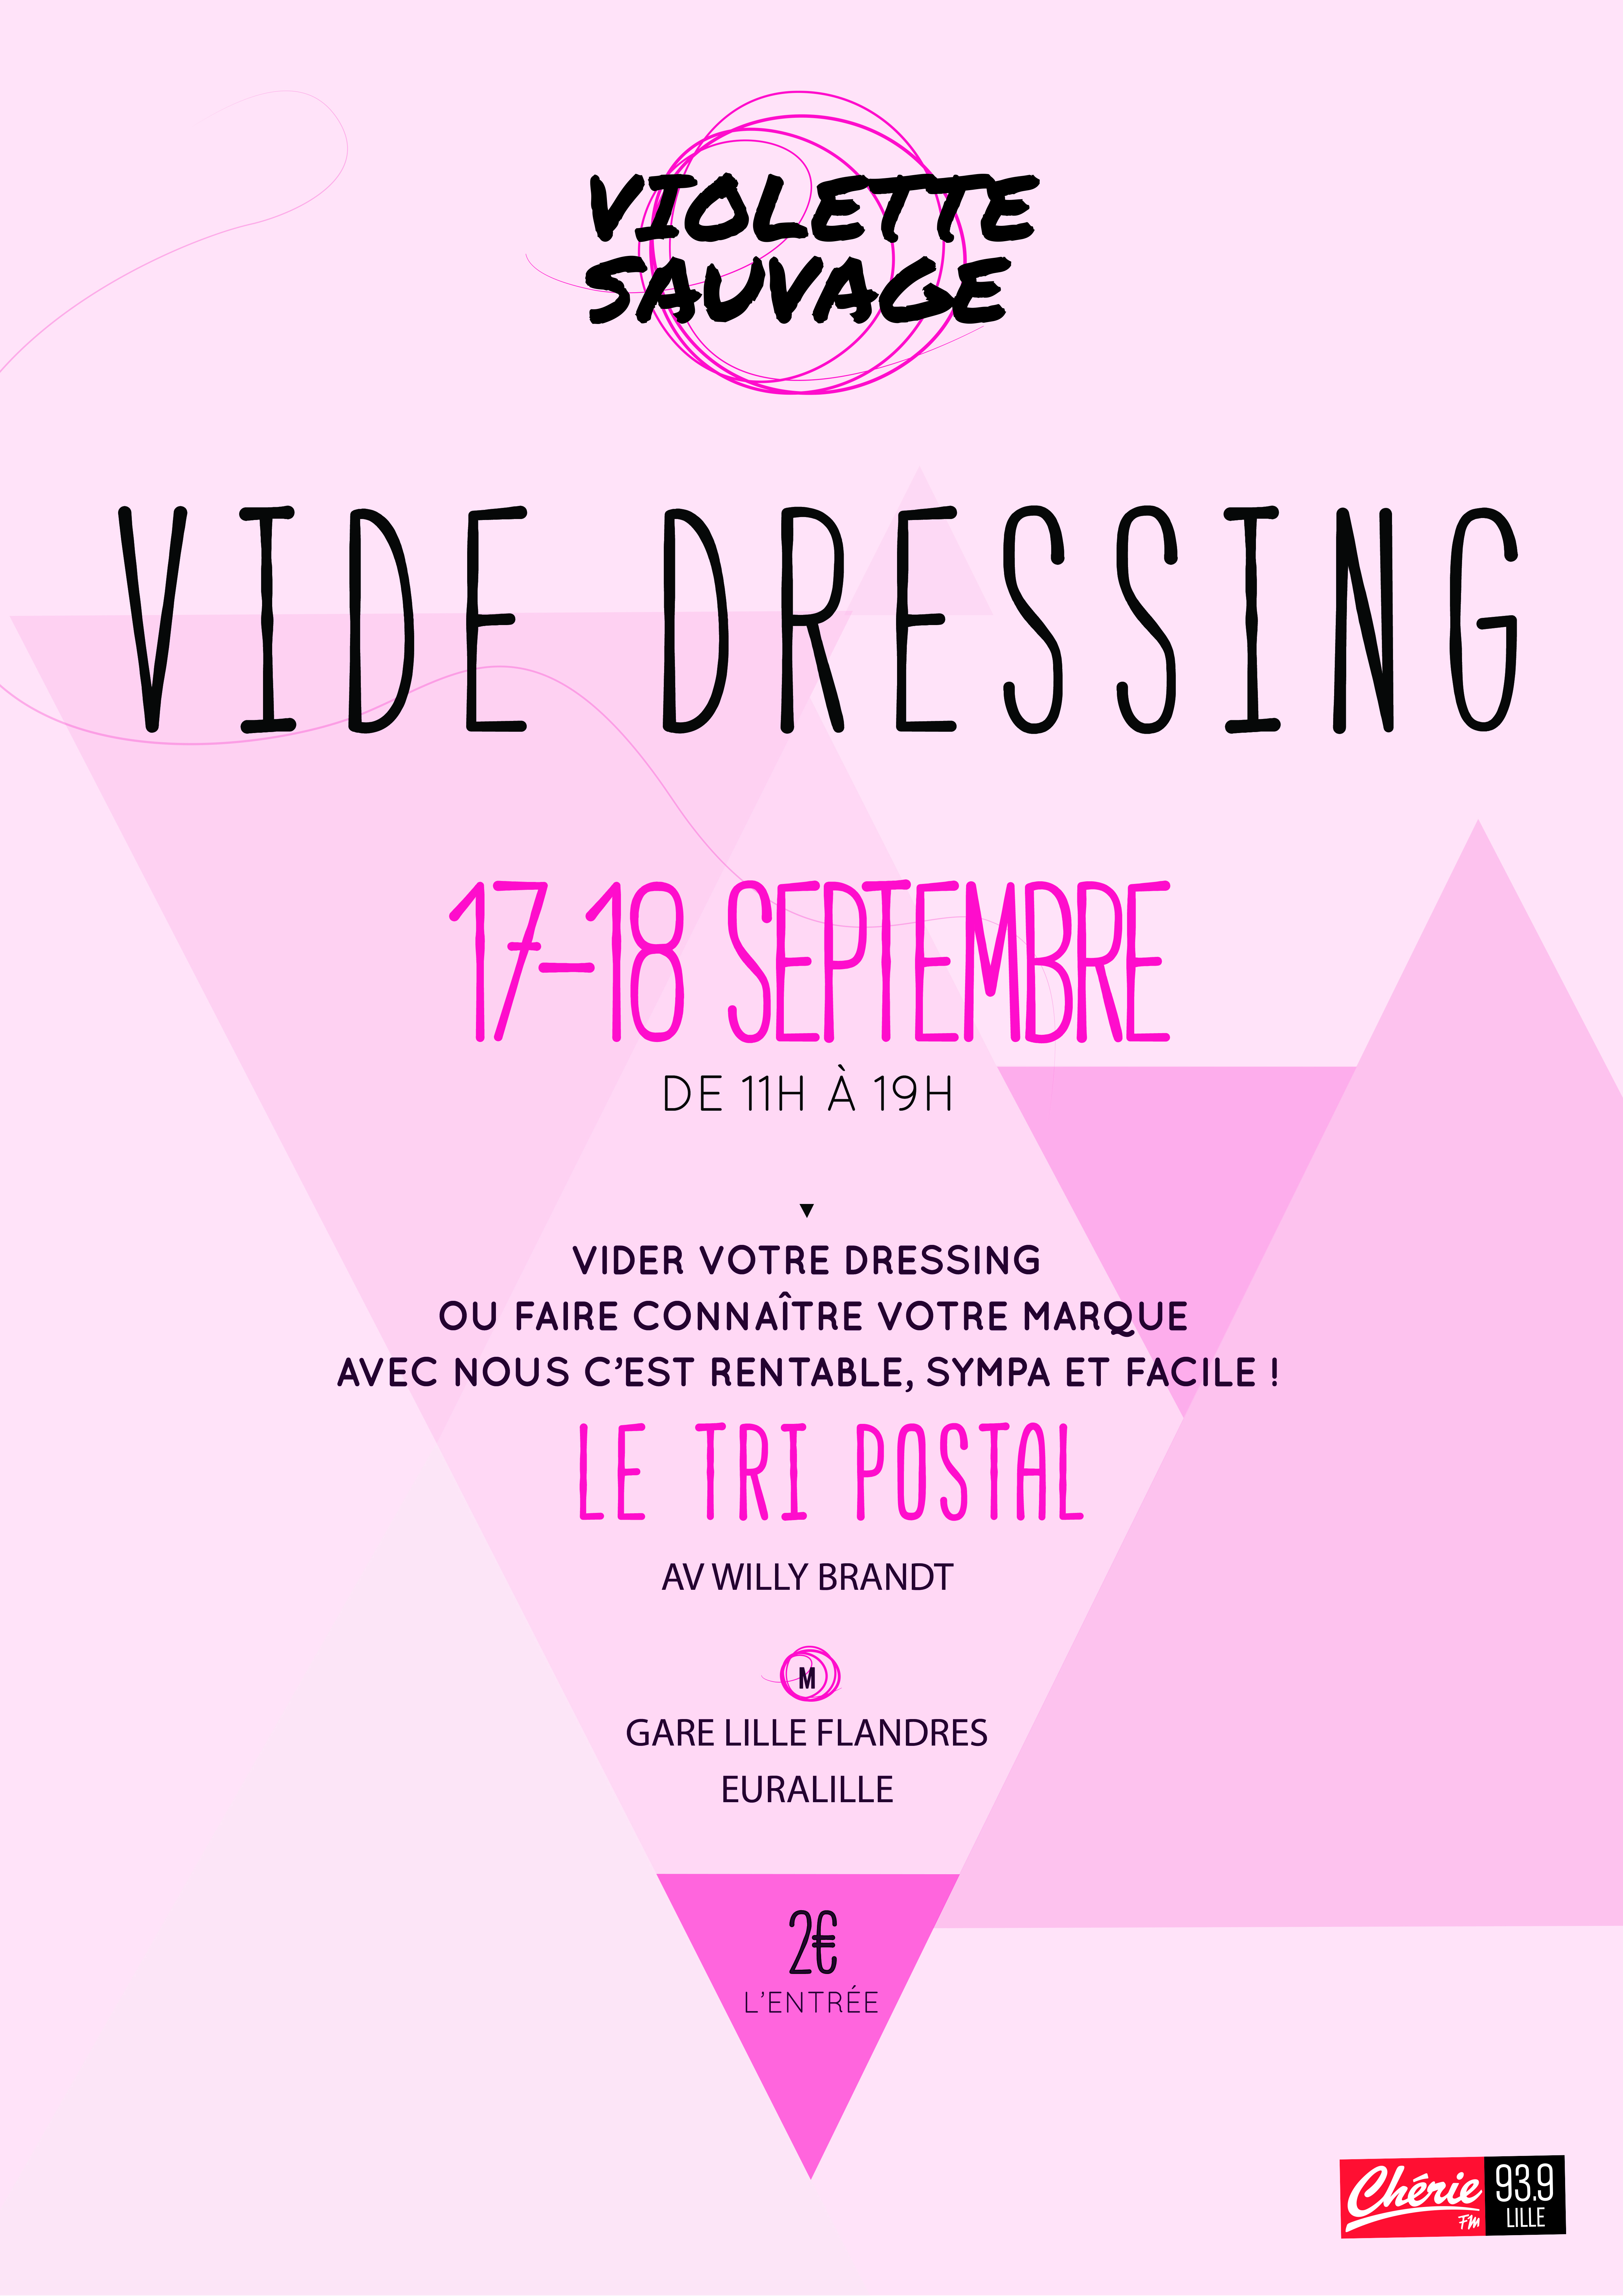 affiche vide dressing violette sauvage lille chicon choc blog de bonnes adresses lilloise. Black Bedroom Furniture Sets. Home Design Ideas